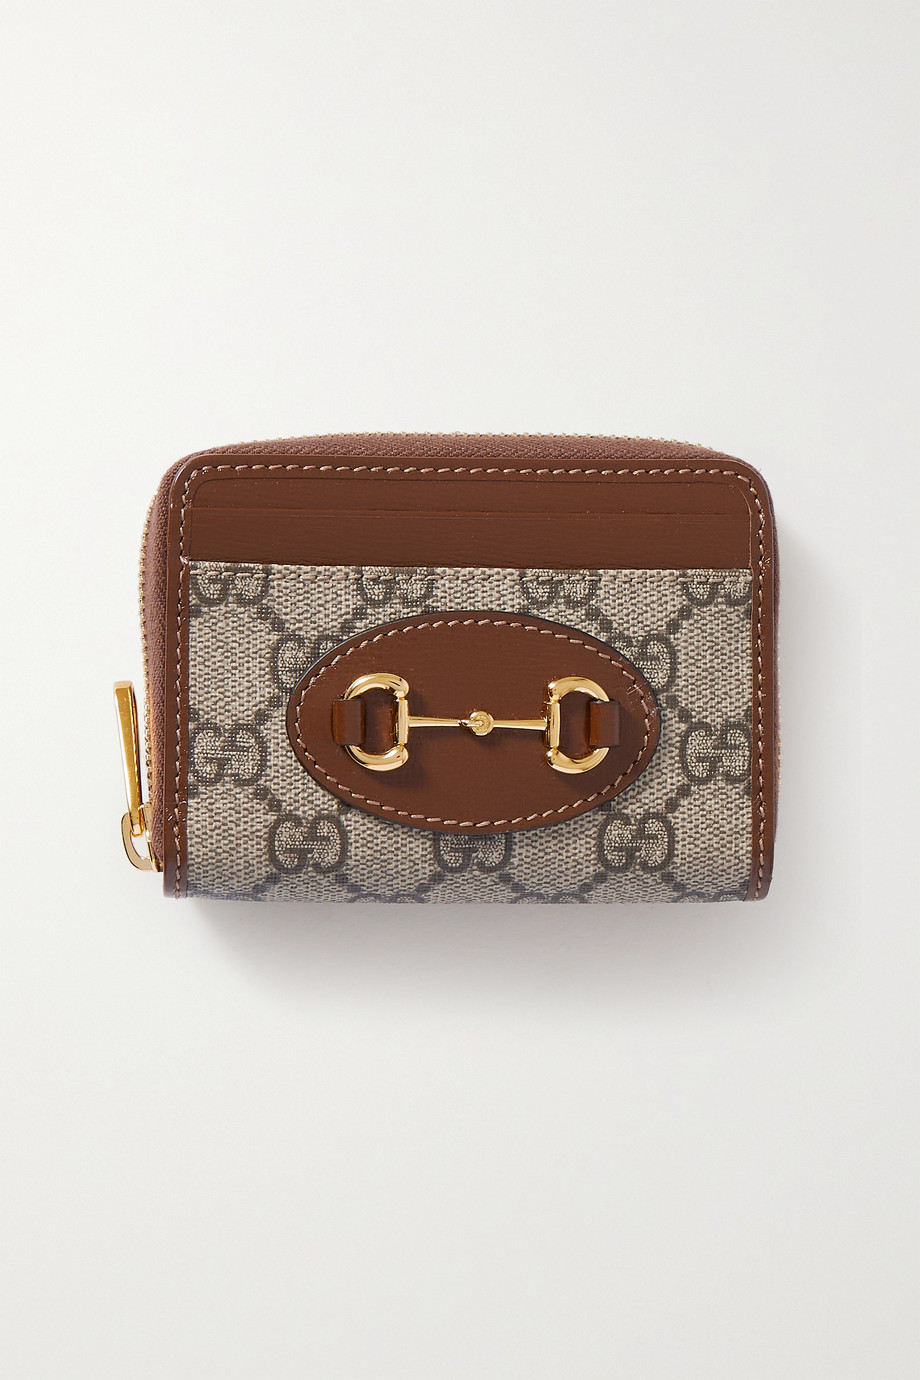 Gucci Horsebit 1955 small leather-trimmed printed coated-canvas cardholder